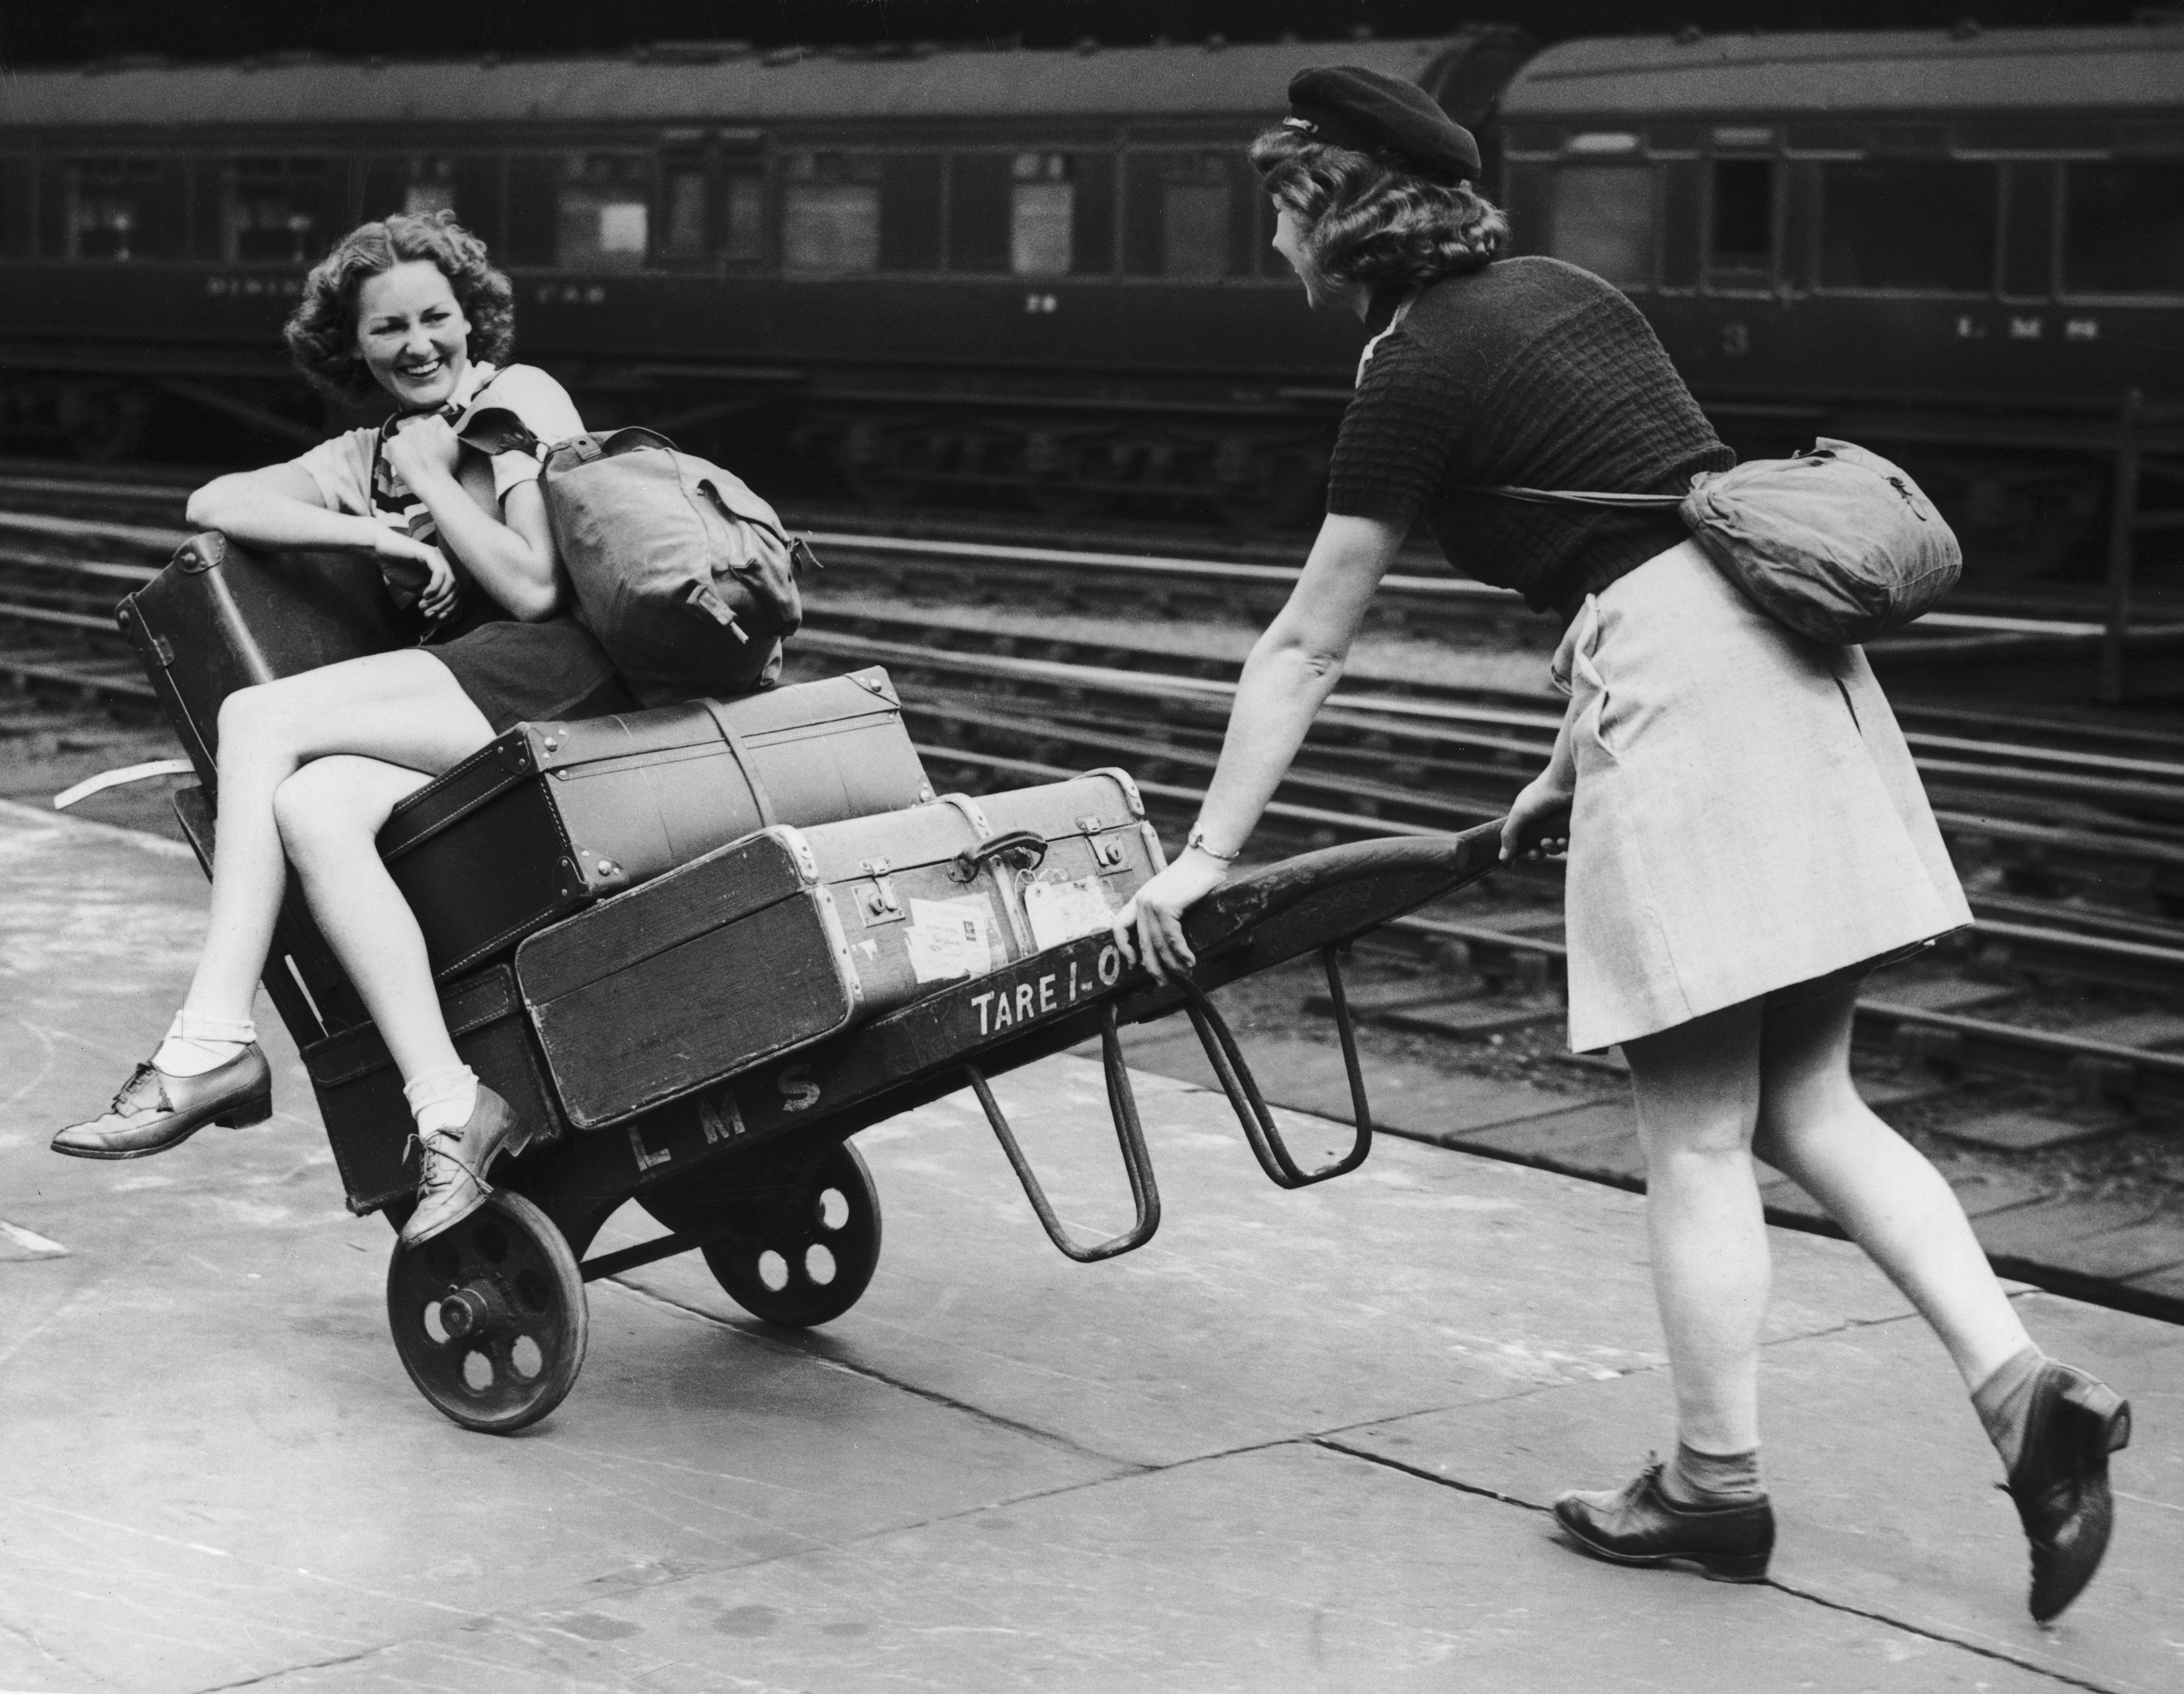 Two holidaymakers amuse themselves with a porter's trolley as they wait for their train at Euston Station in London in August 1939.